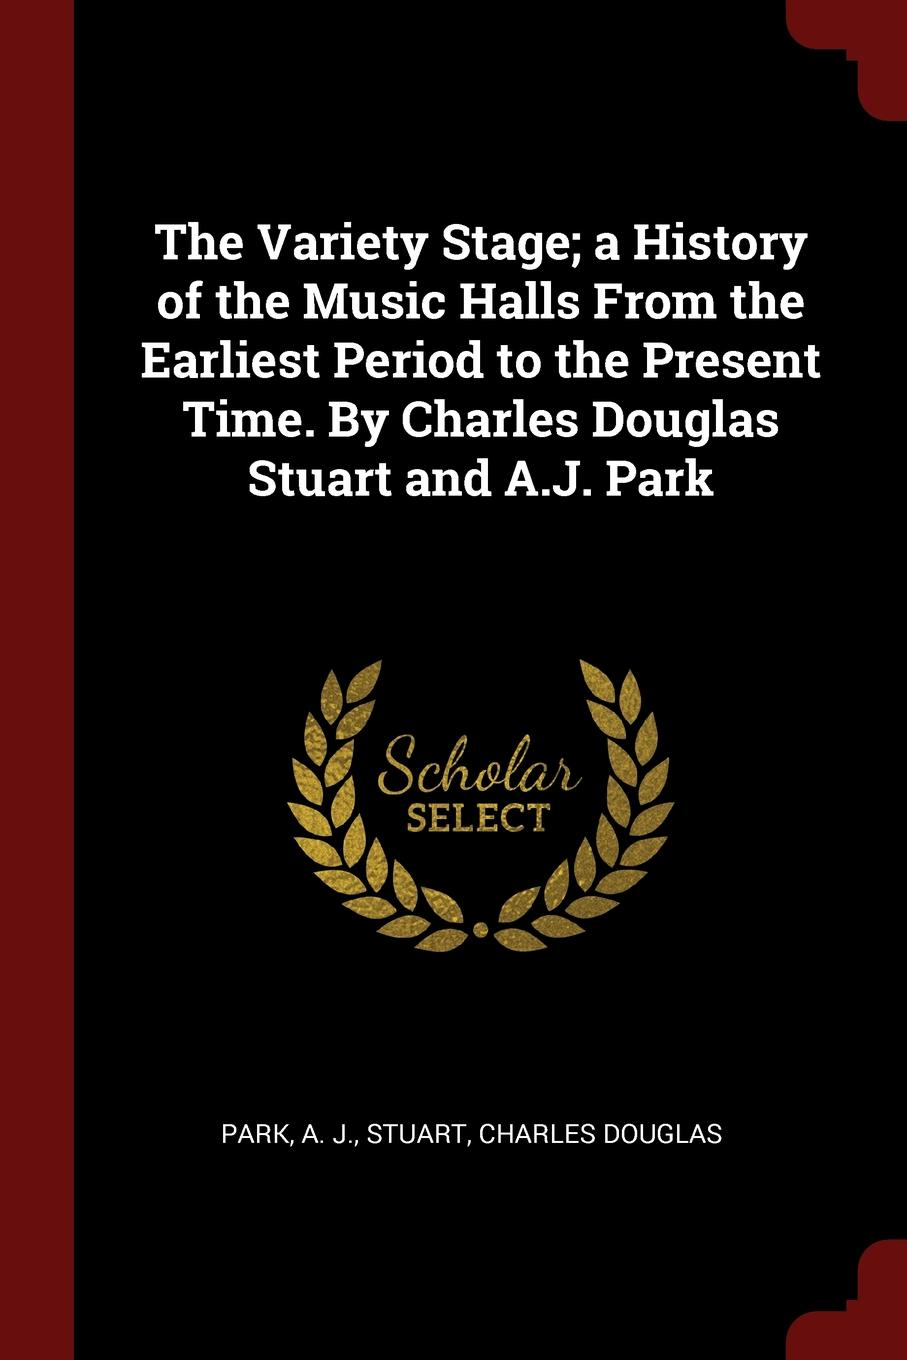 A J. Park, Charles Douglas Stuart The Variety Stage; a History of the Music Halls From the Earliest Period to the Present Time. By Charles Douglas Stuart and A.J. Park charles richard tuttle the centennial northwest an illustrated history of the northwest being a full and complete civil political and military history of this great section of the united states from its earliest settlement to the present time